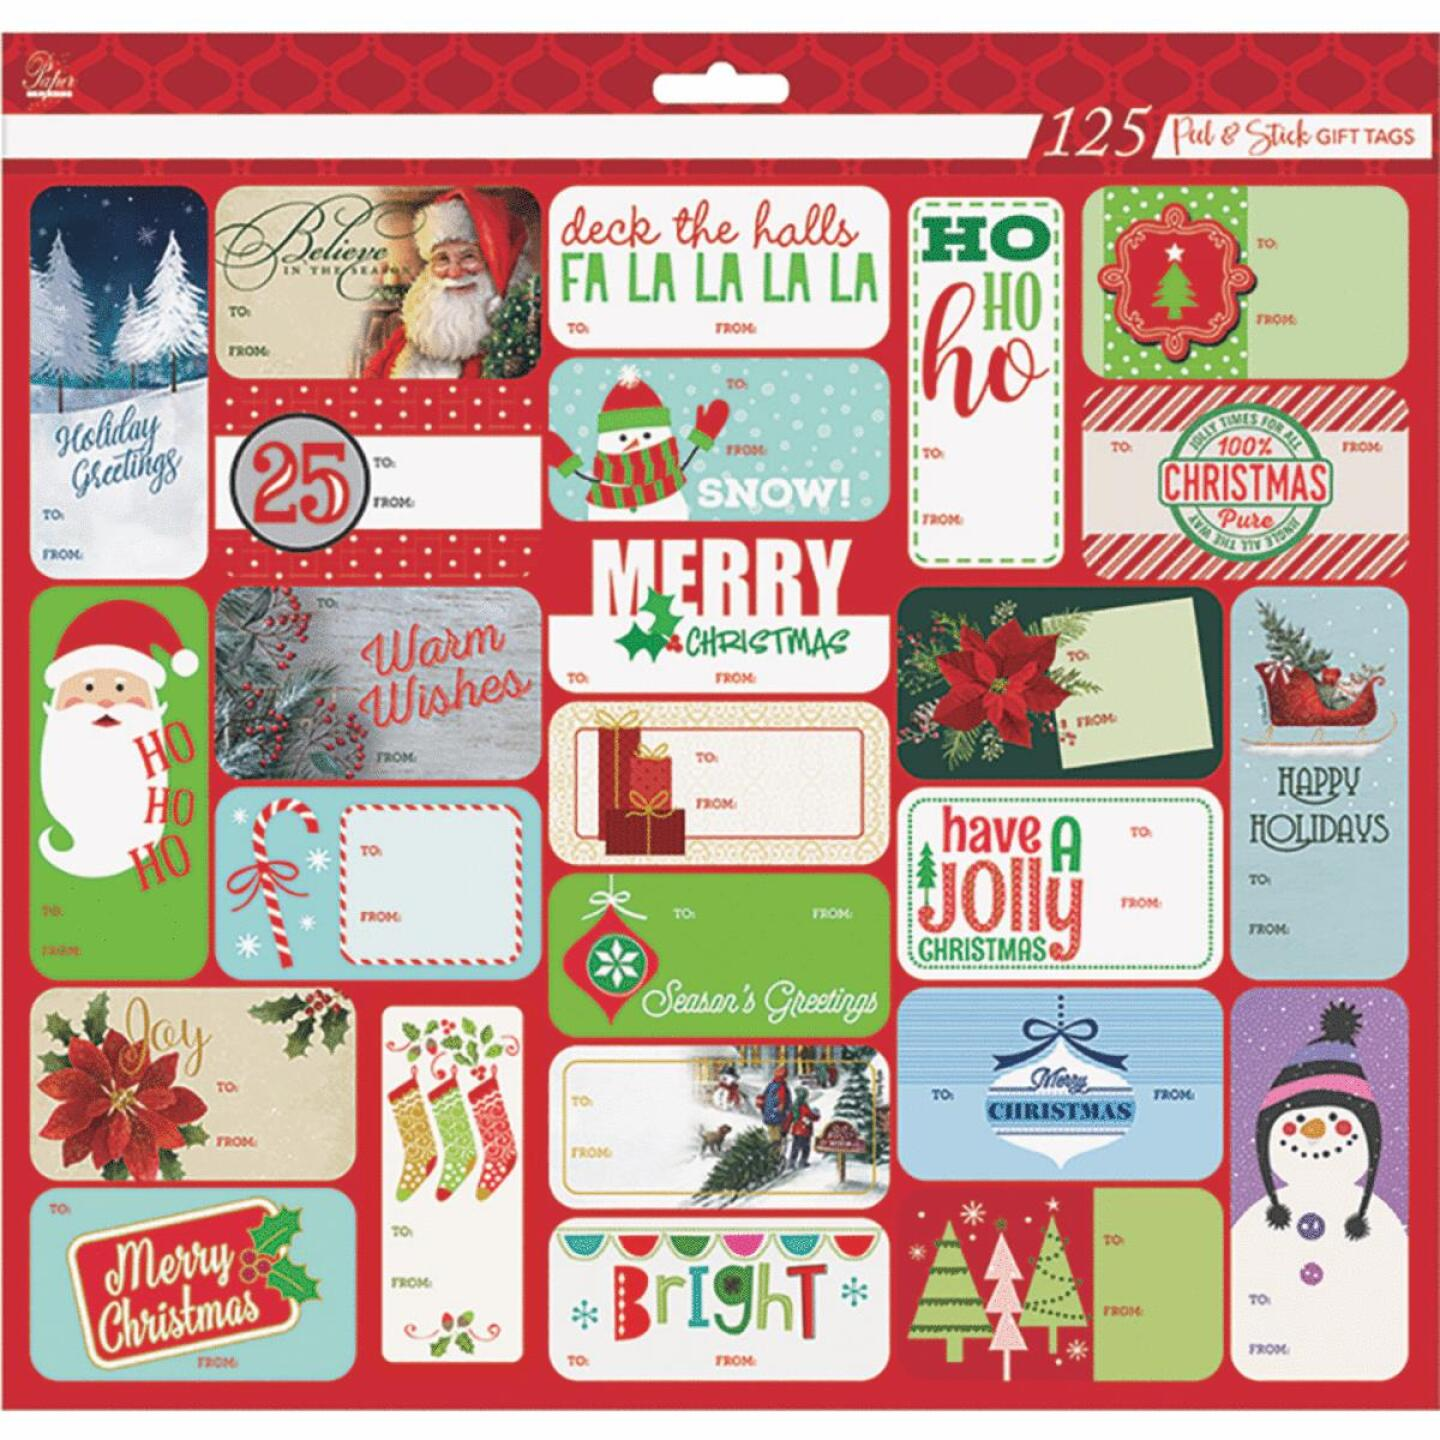 Paper Images Christmas Gift Tags (125-Pack) Image 2